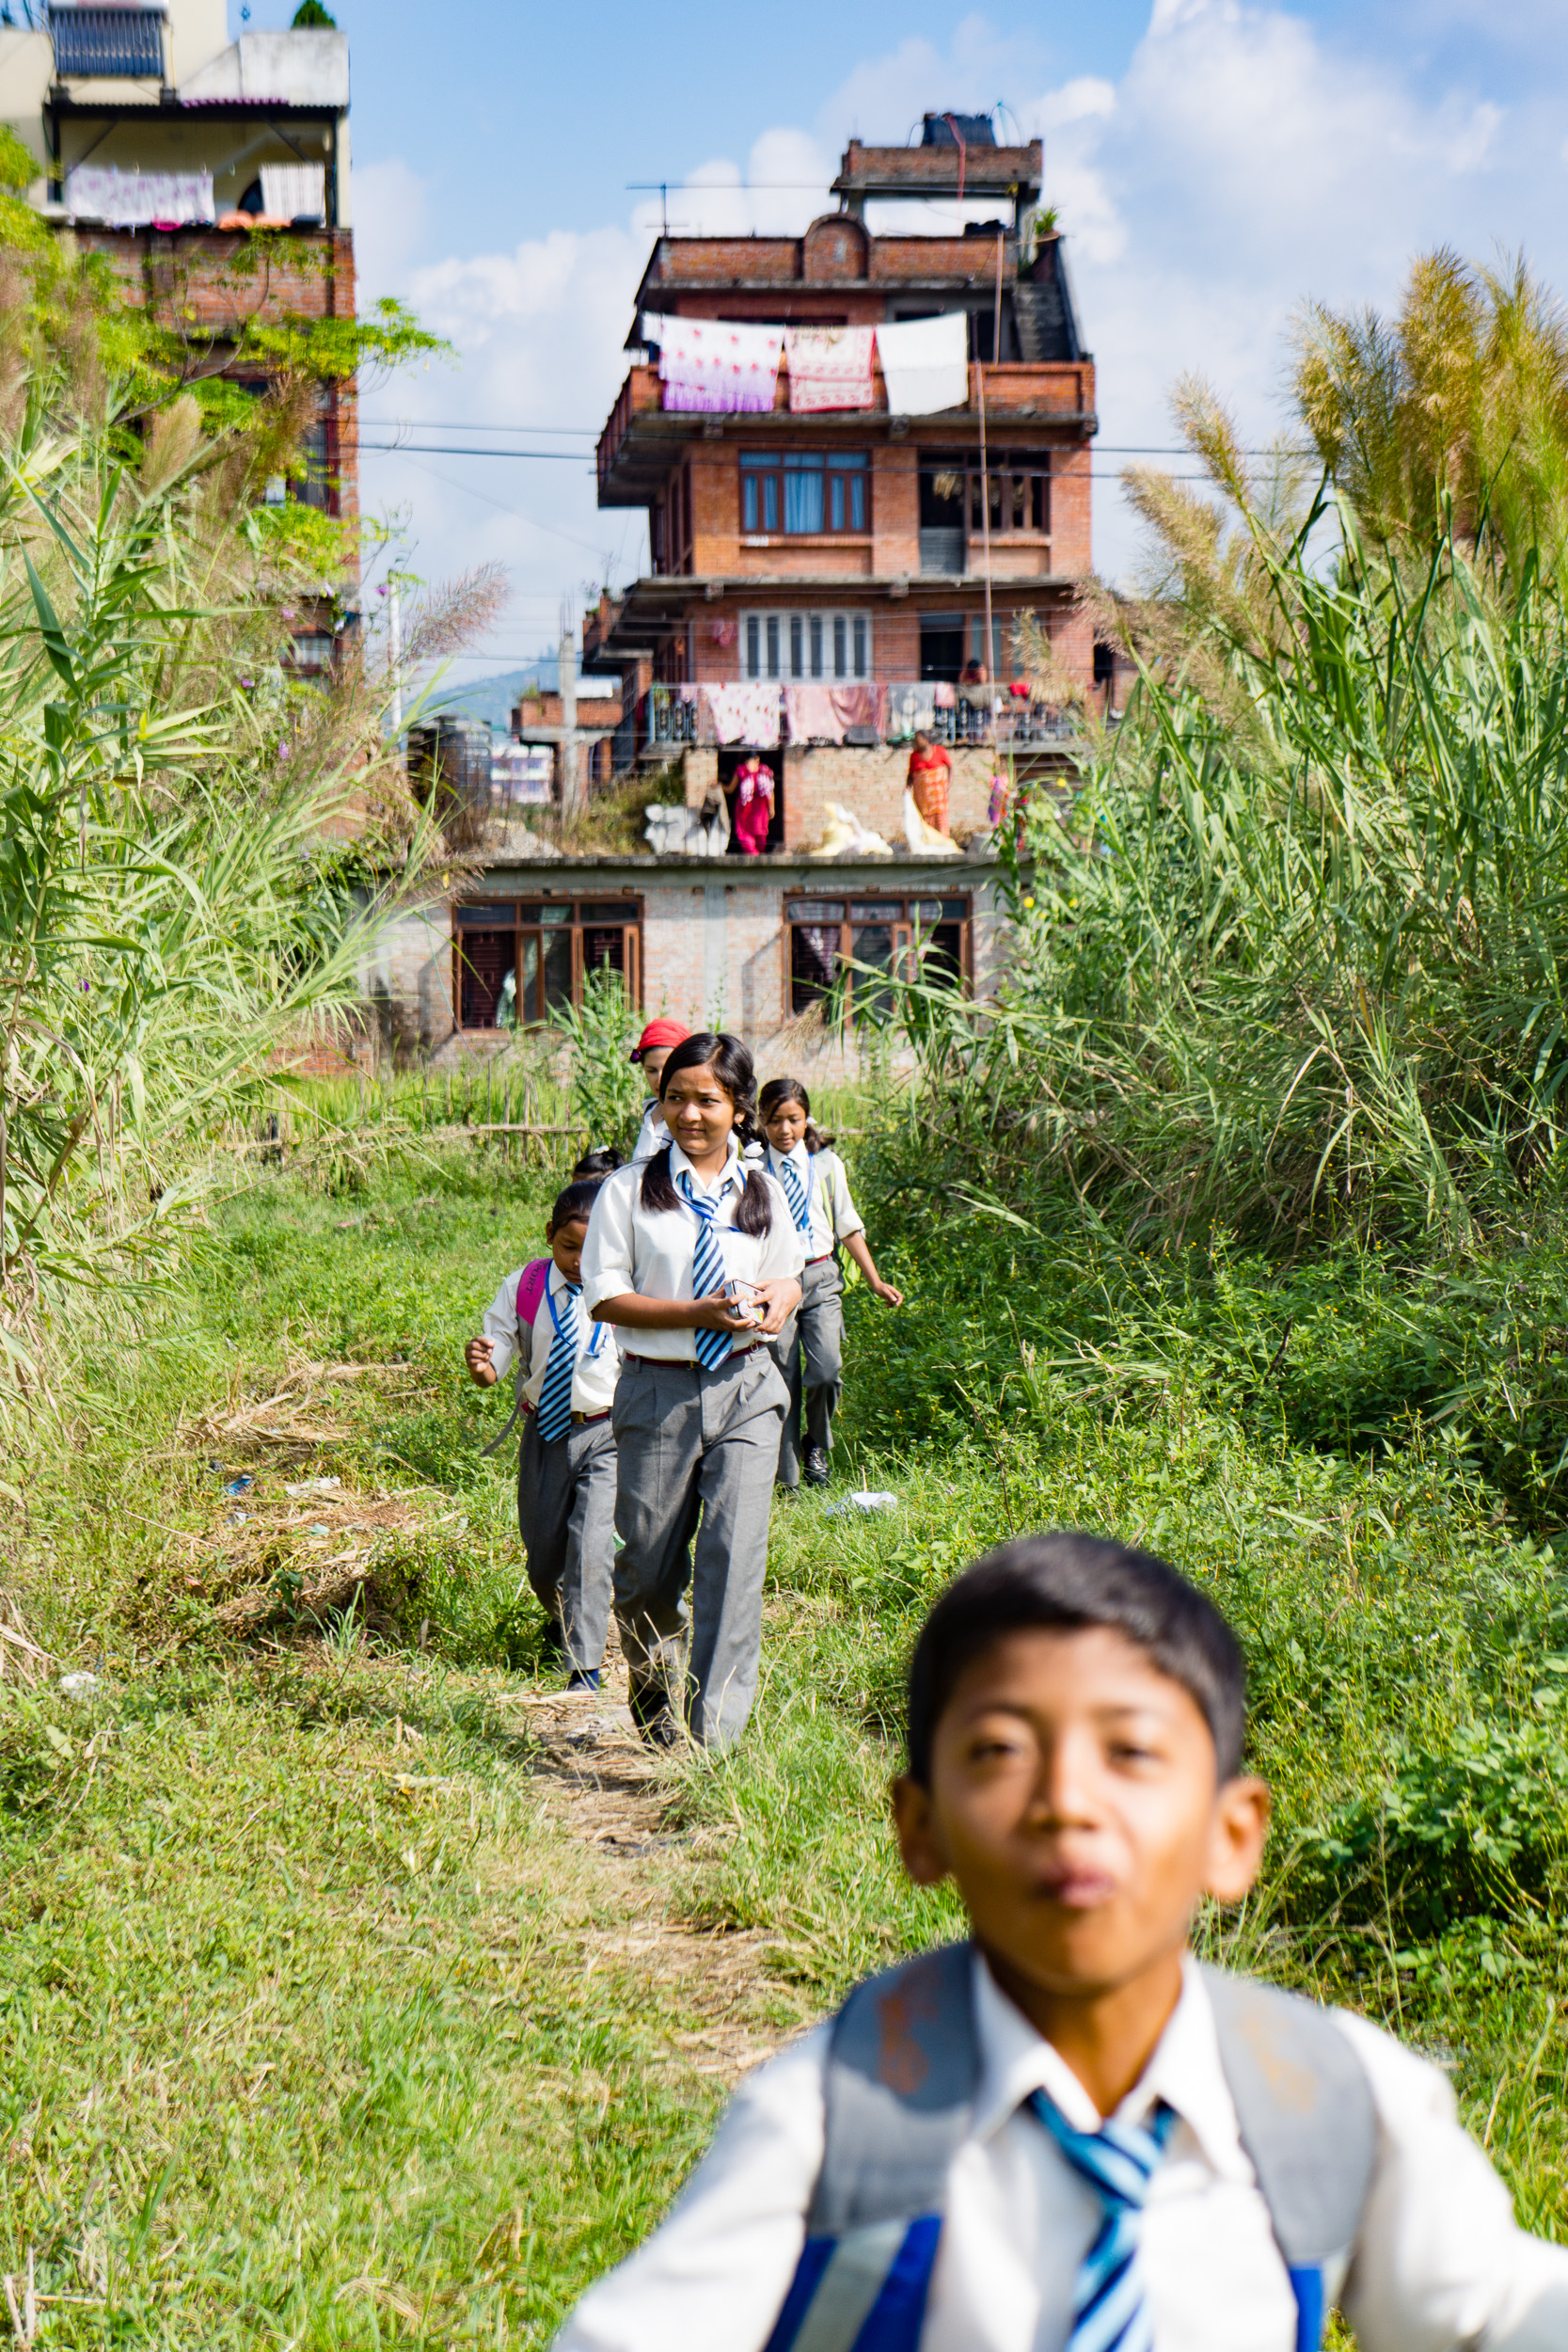 The walk to school is one of my favorite parts of the visit to the orphanage.   Bhaktapur